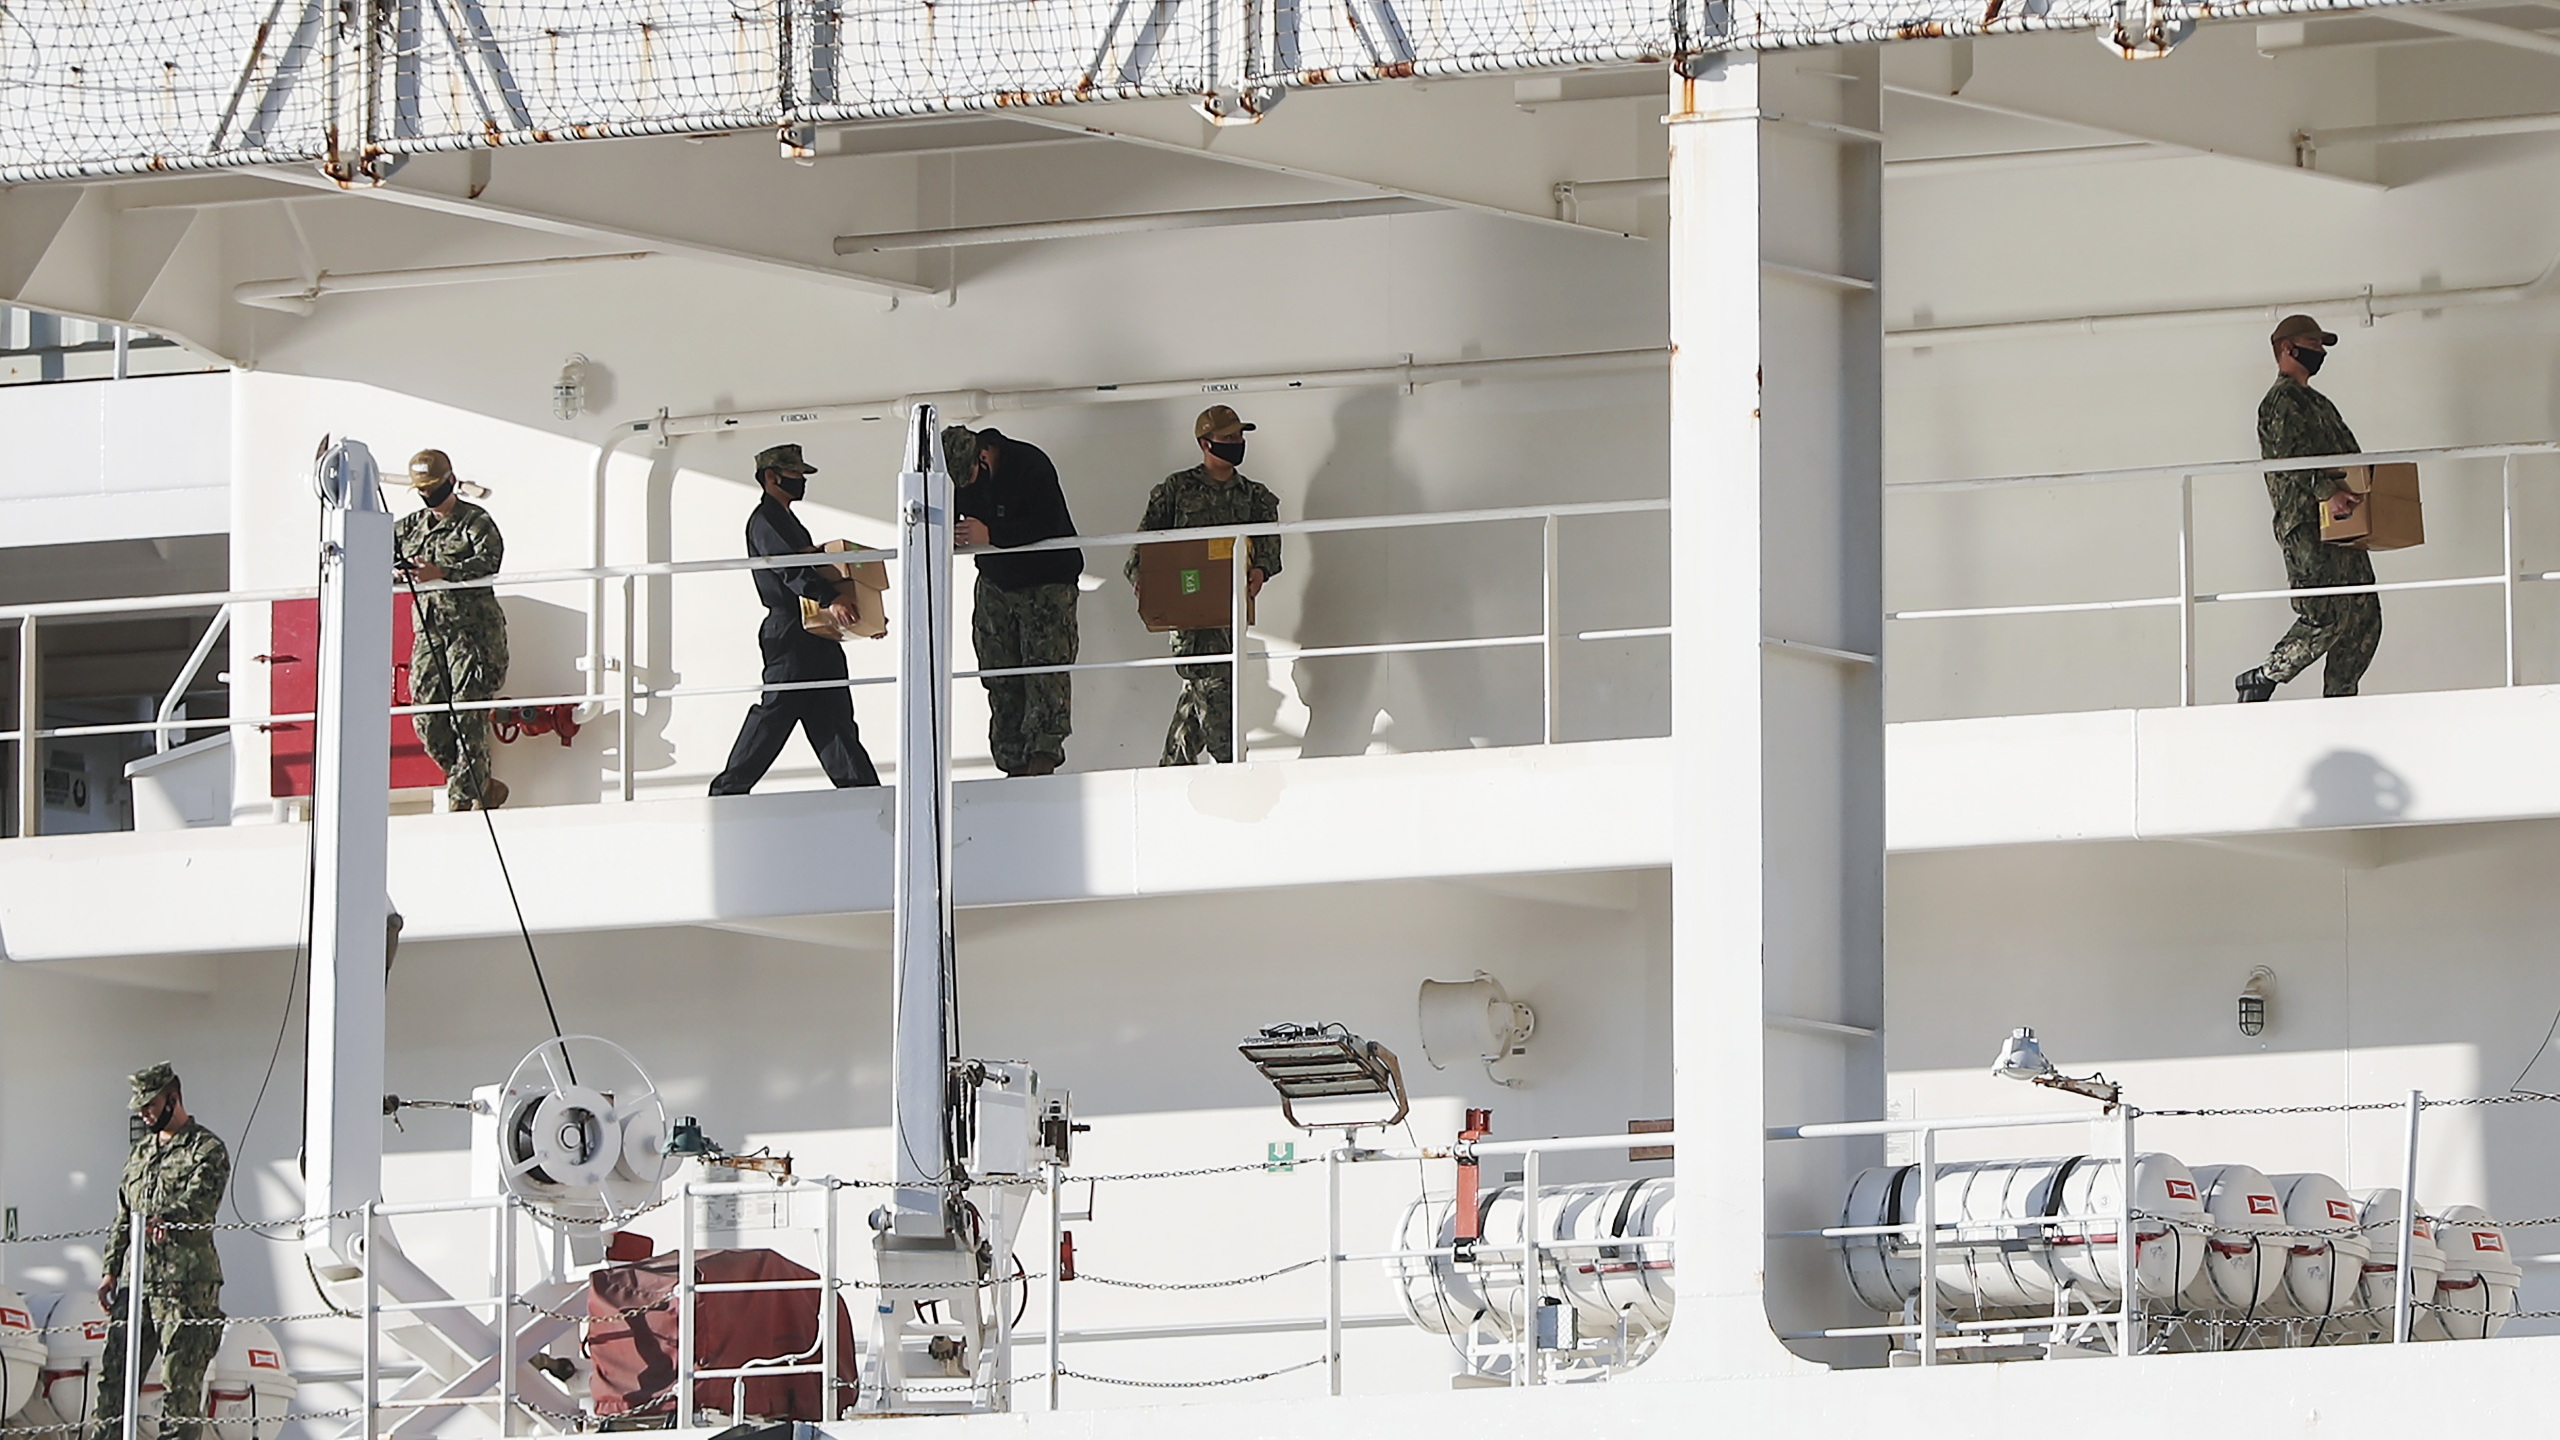 Military personnel wearing face masks work aboard the USNS Mercy hospital ship docked in the Port of Los Angeles amidst the coronavirus pandemic on April 15, 2020. (Credit: Mario Tama / Getty Images)